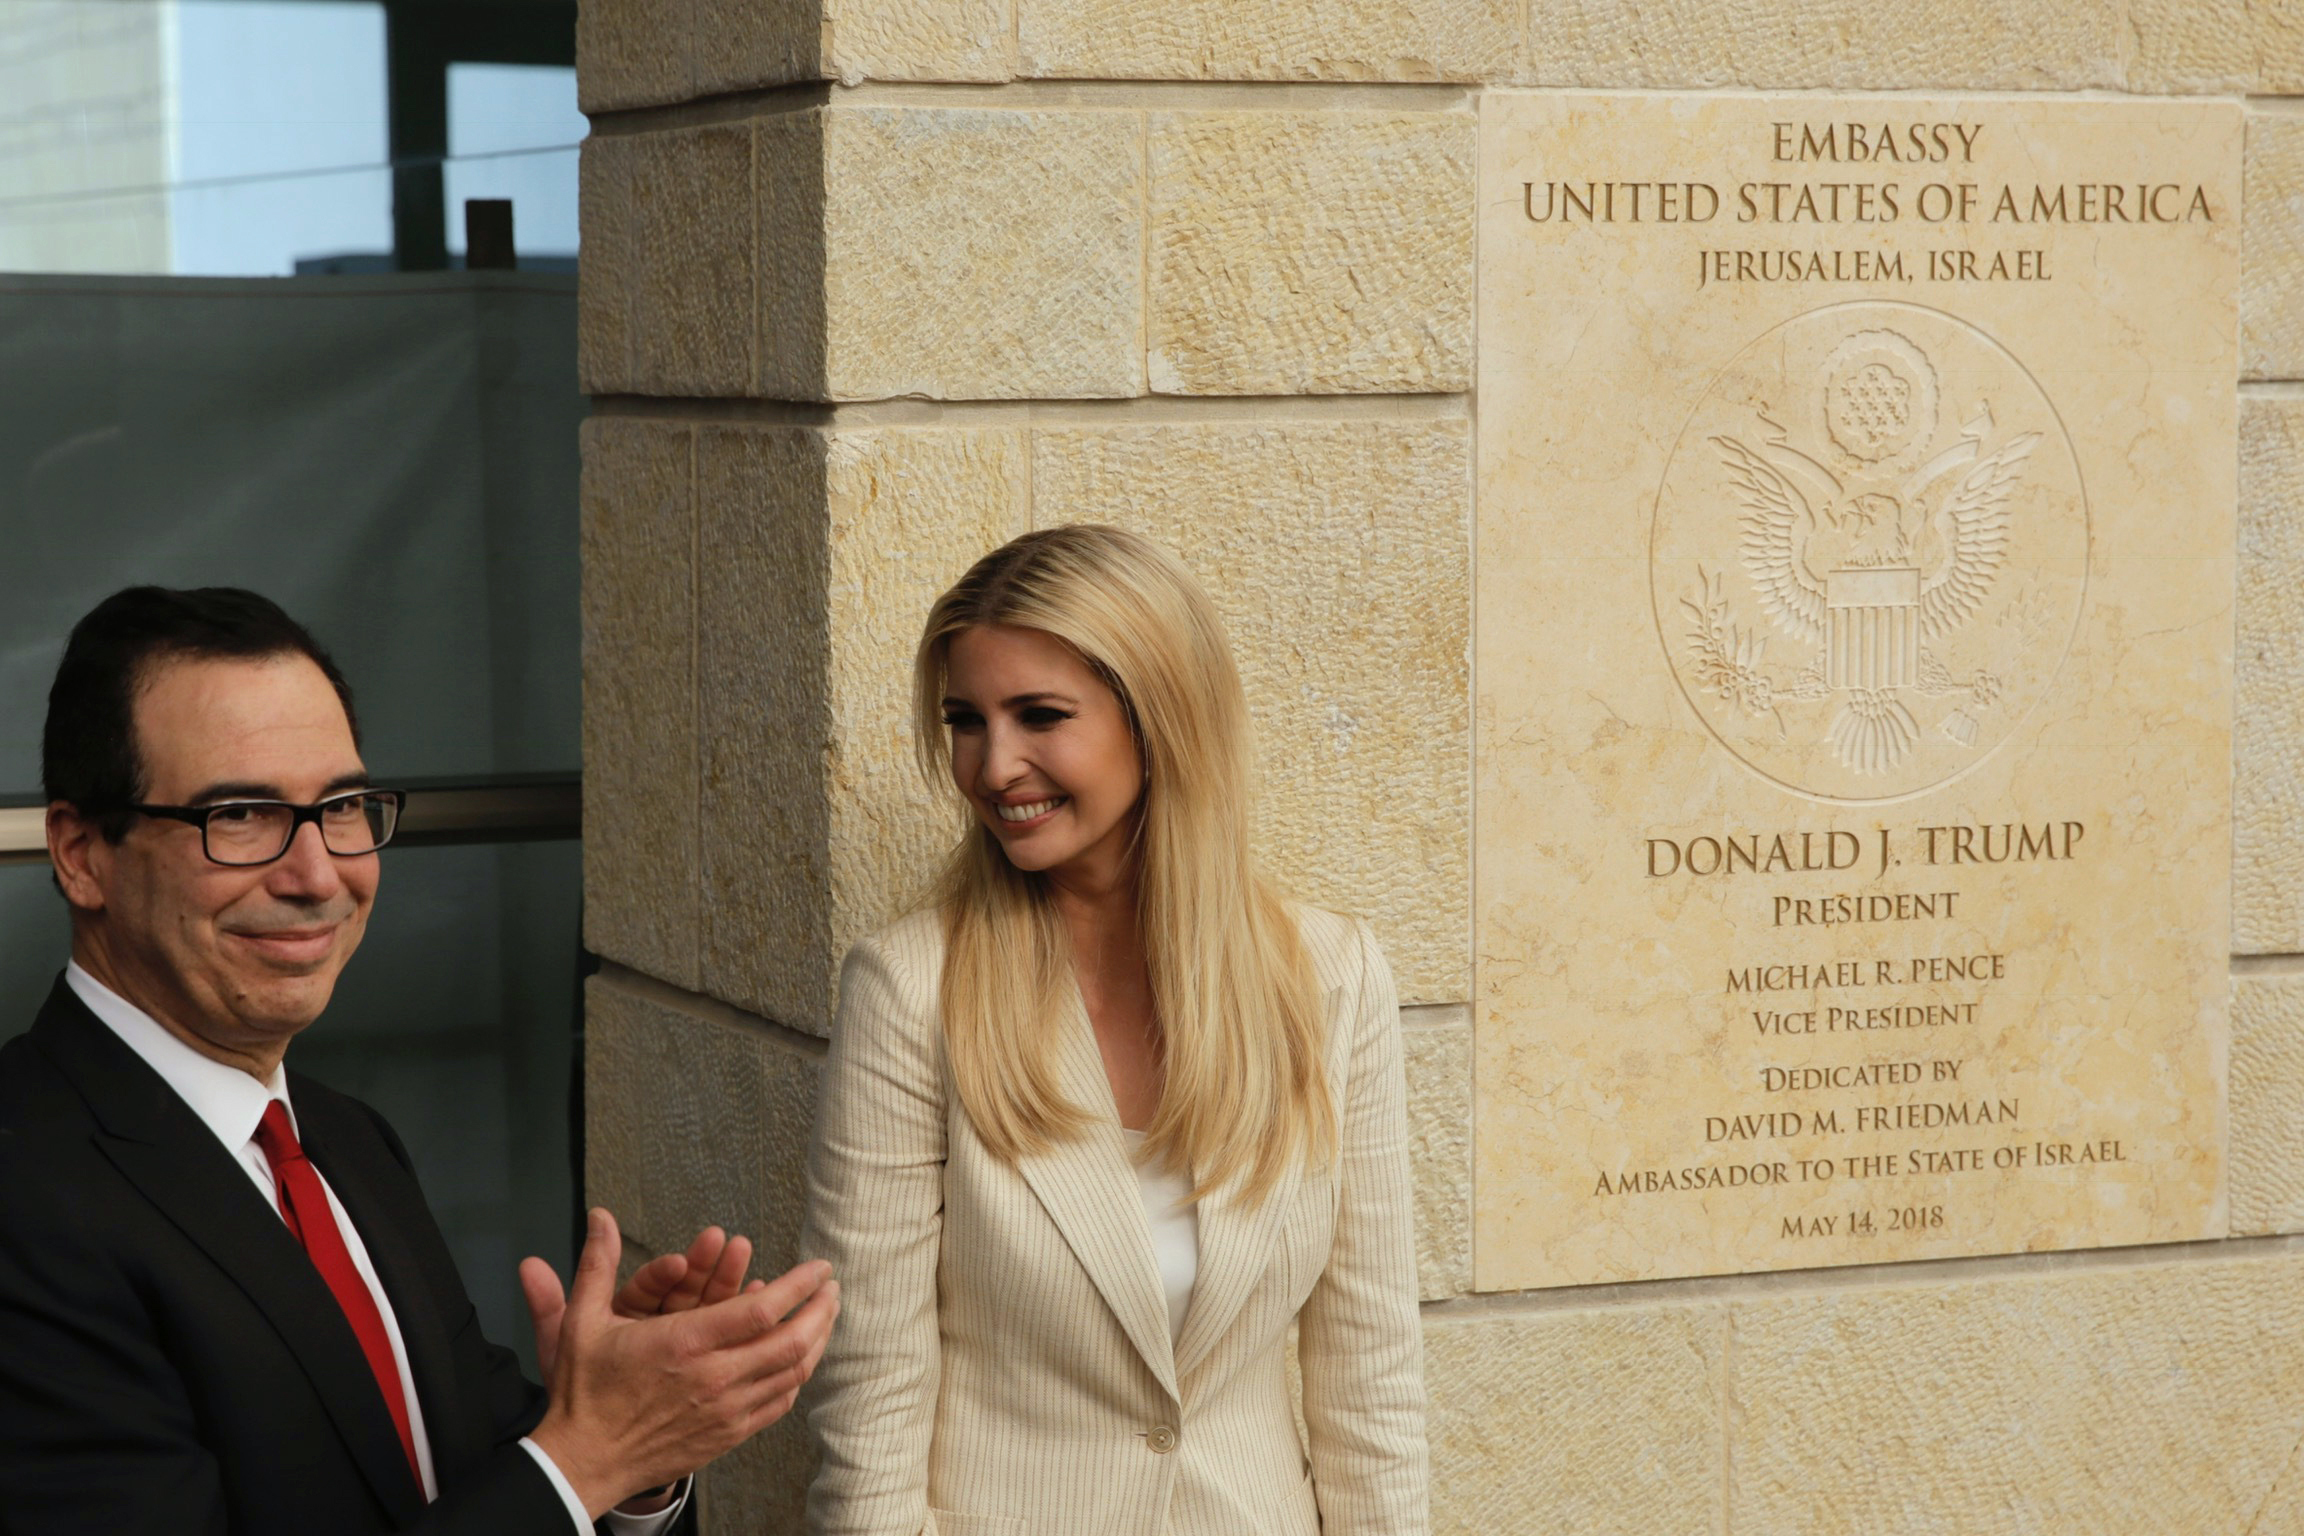 U.S. President Donald Trump's daughter Ivanka Trump, right, and U.S. Treasury Secretary Steve Mnuchin attend the opening ceremony of the new U.S. embassy in Jerusalem, May 14, 2018.